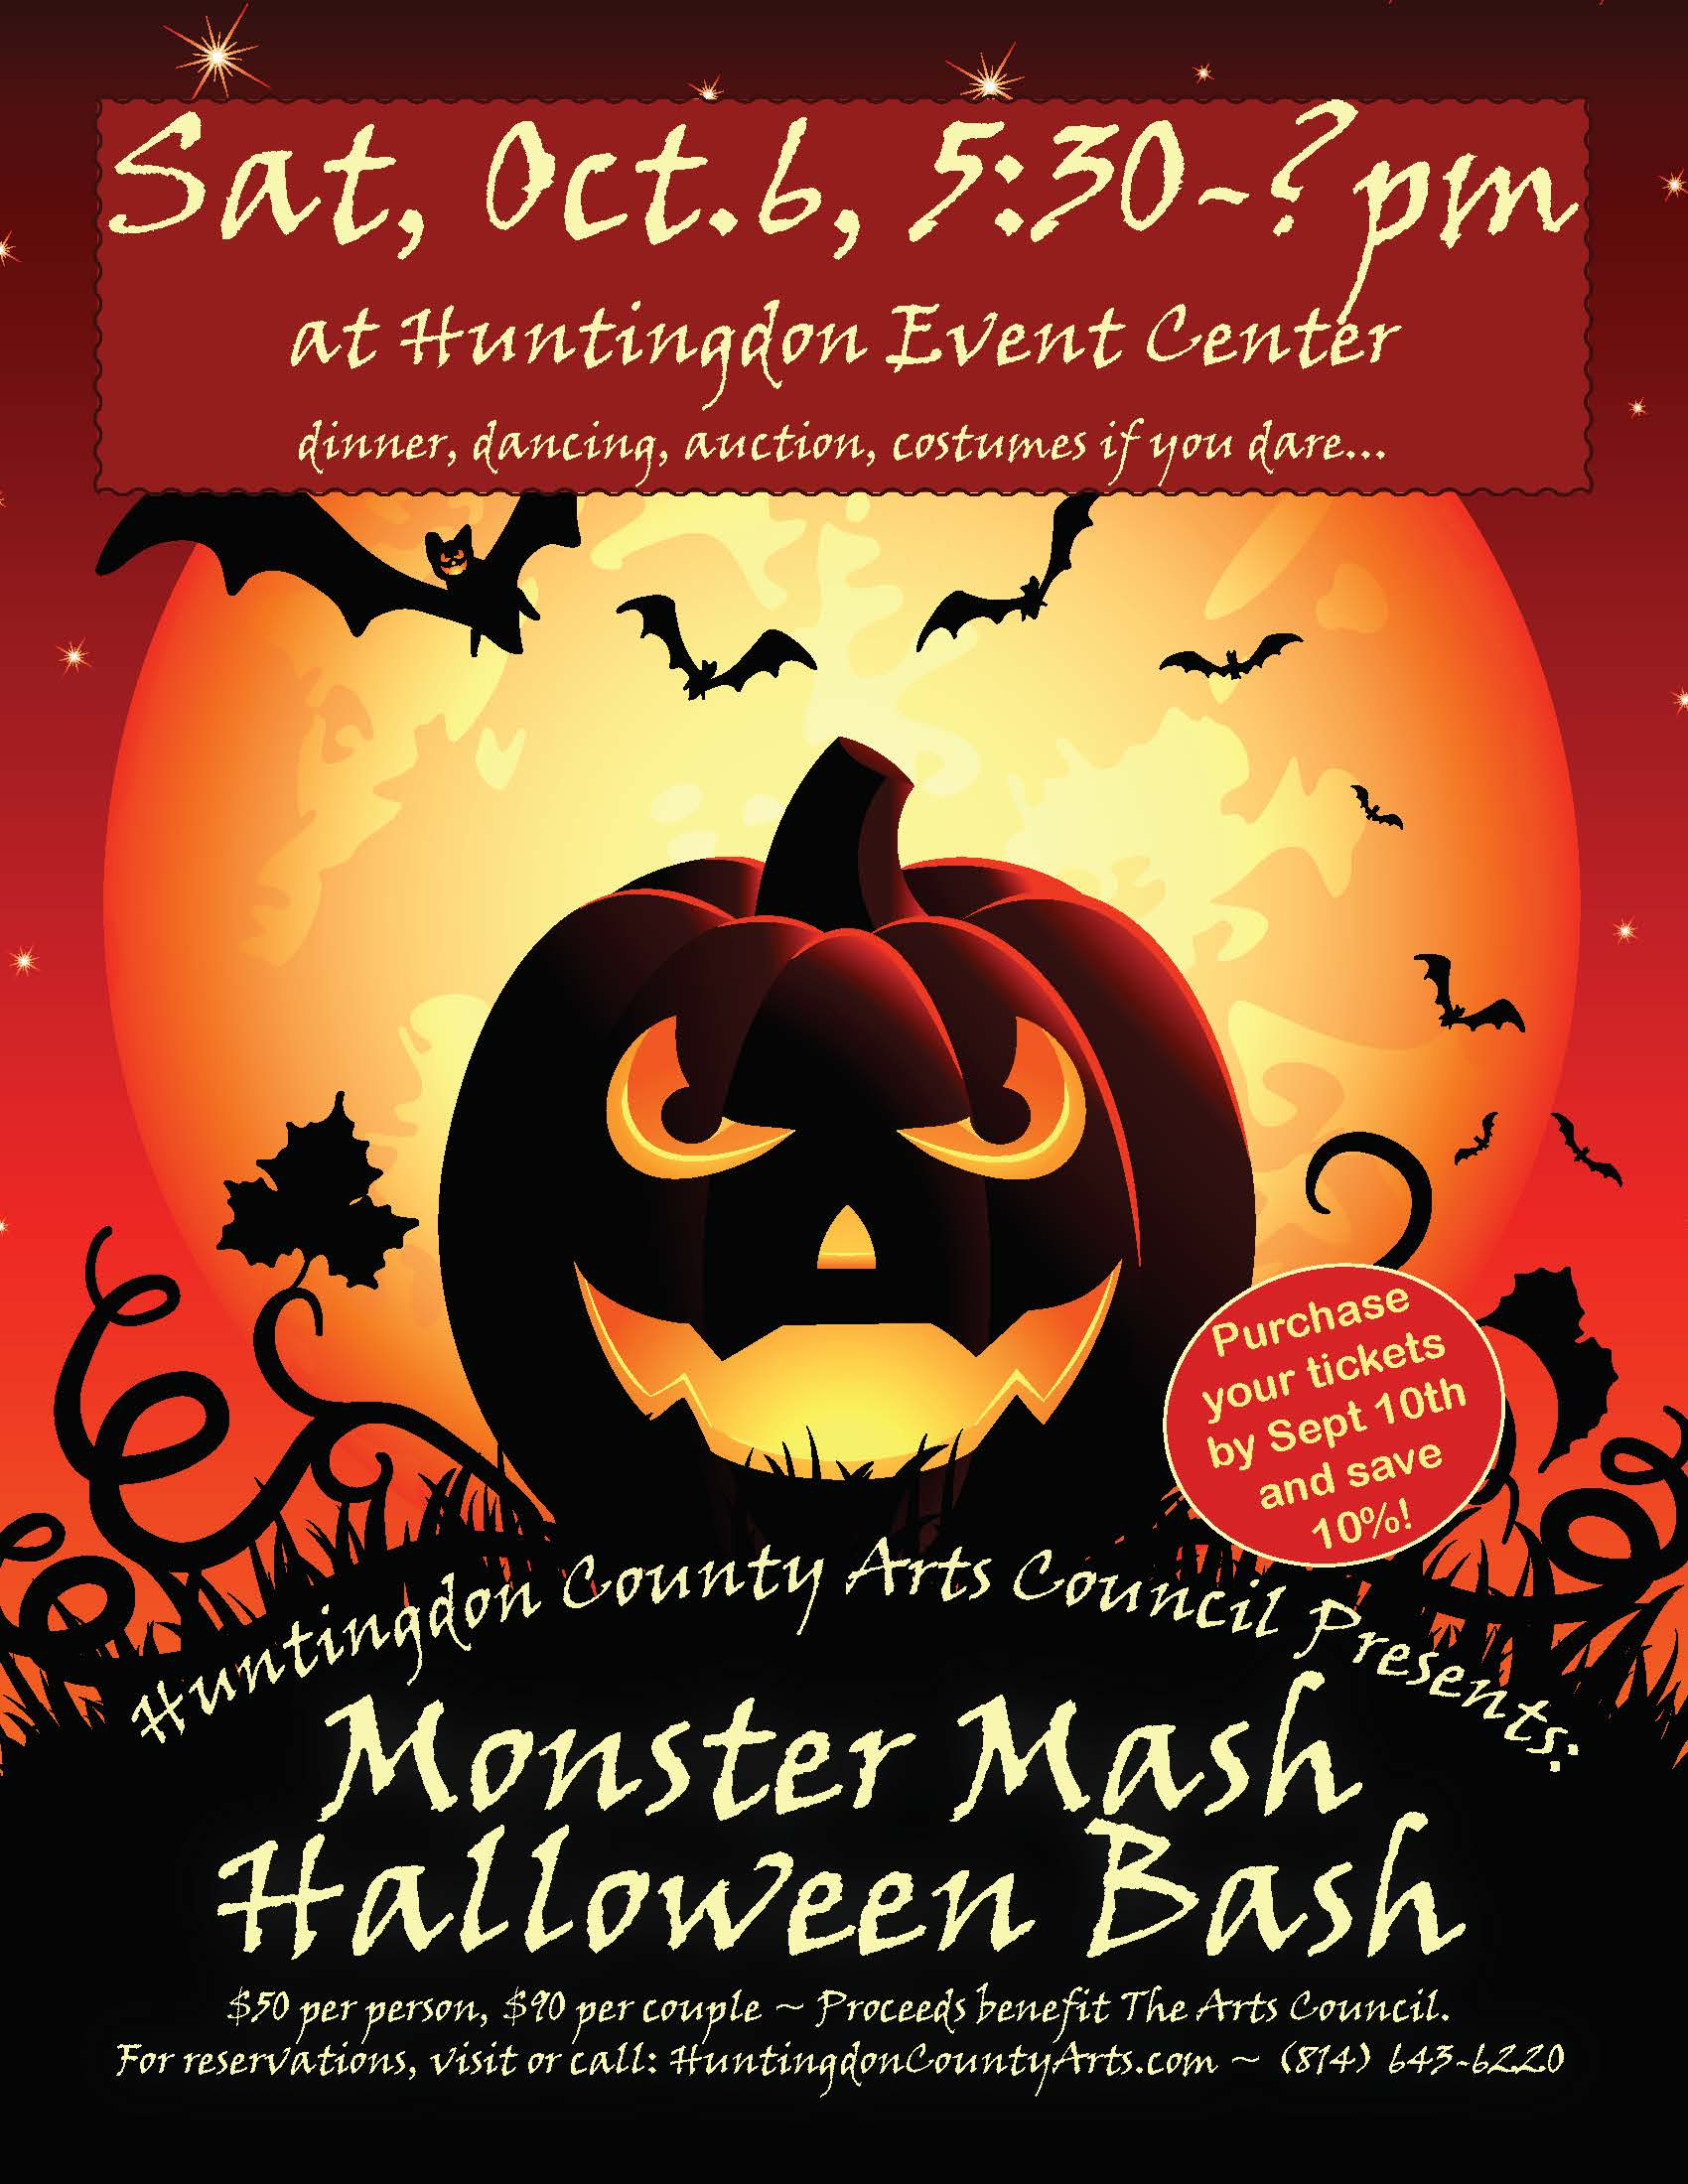 join us at the monster mash halloween bash, saturday, october 6